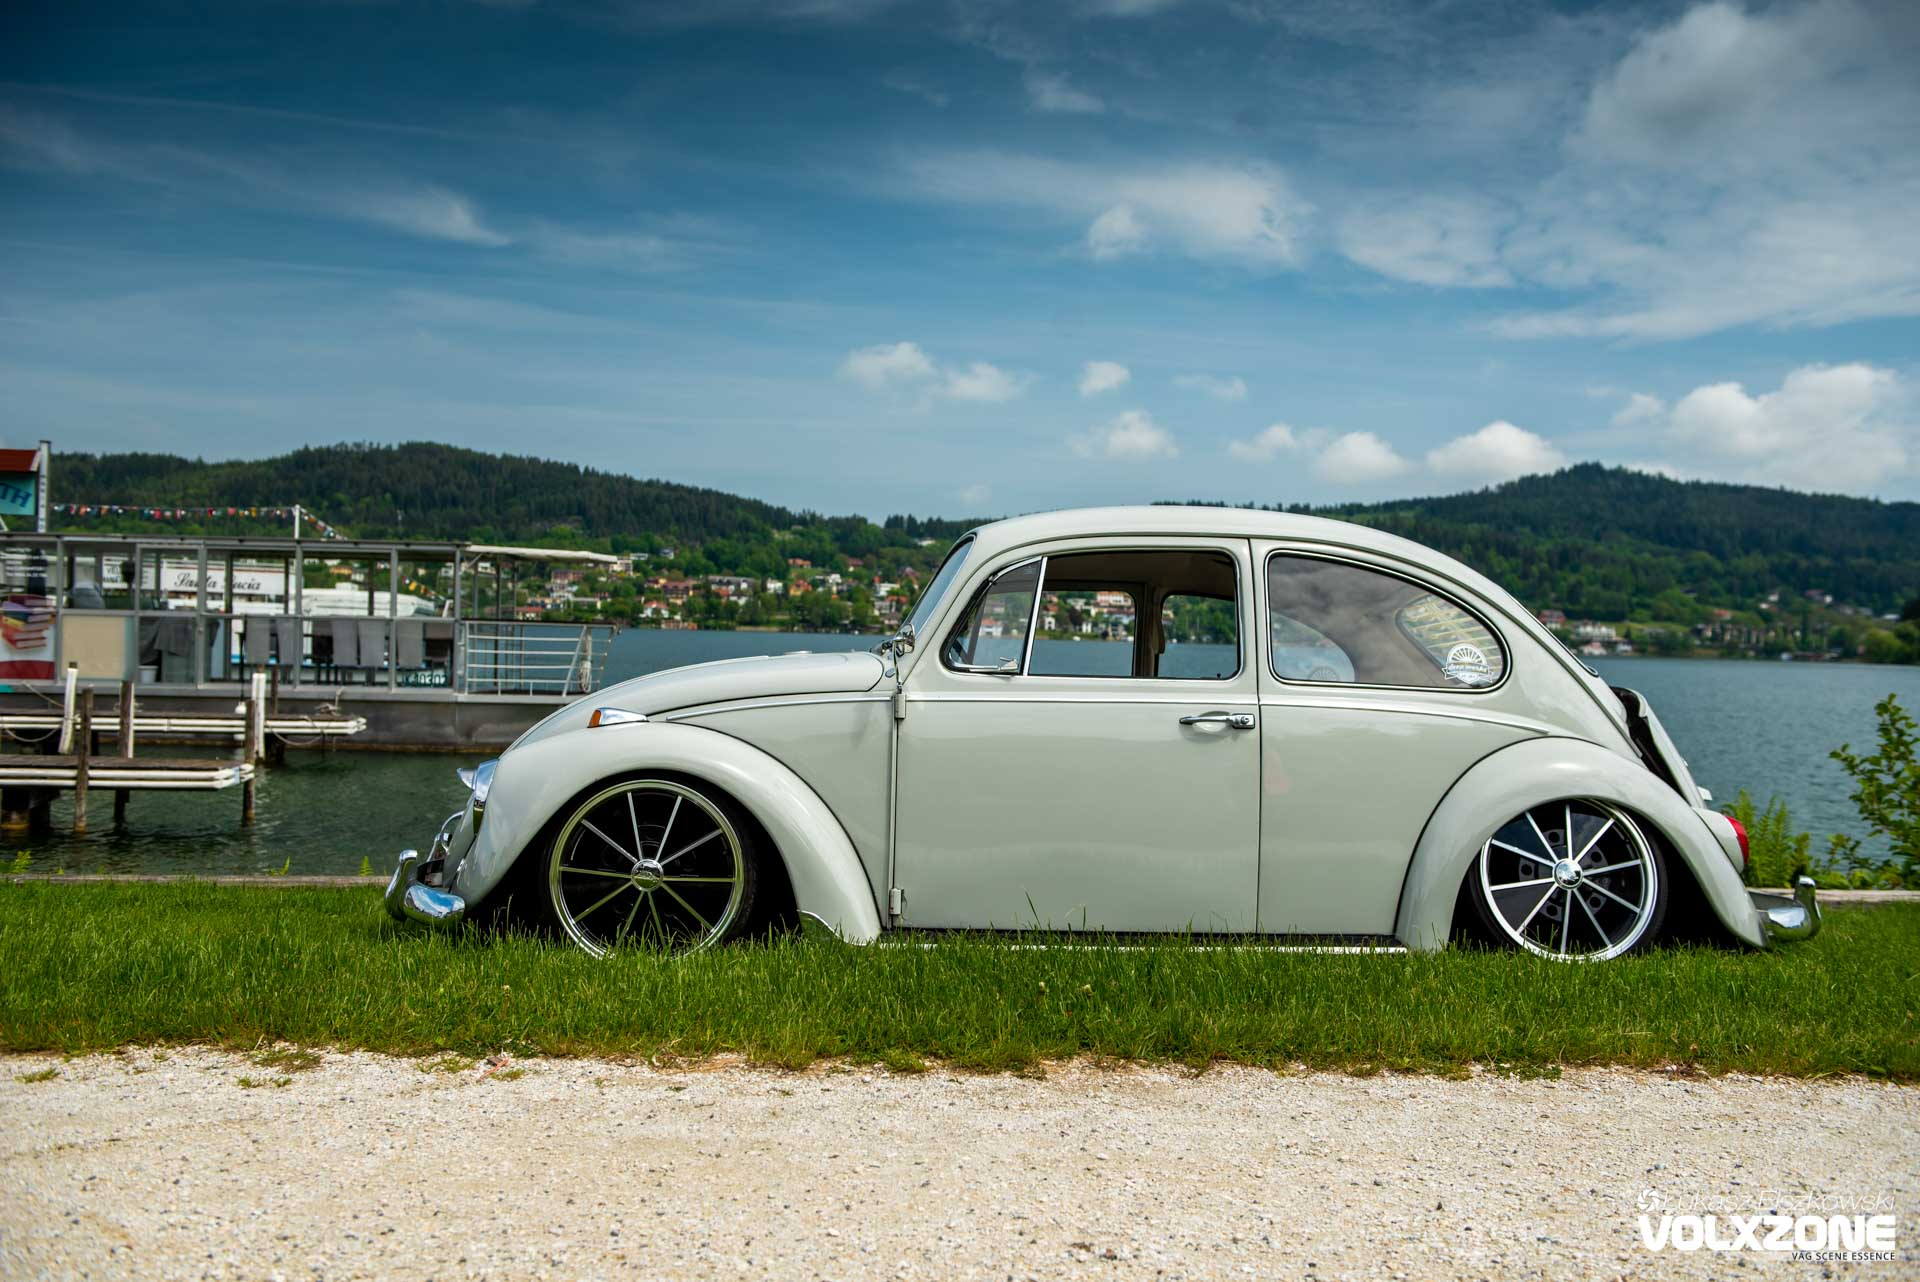 The Wörthersee Beetles